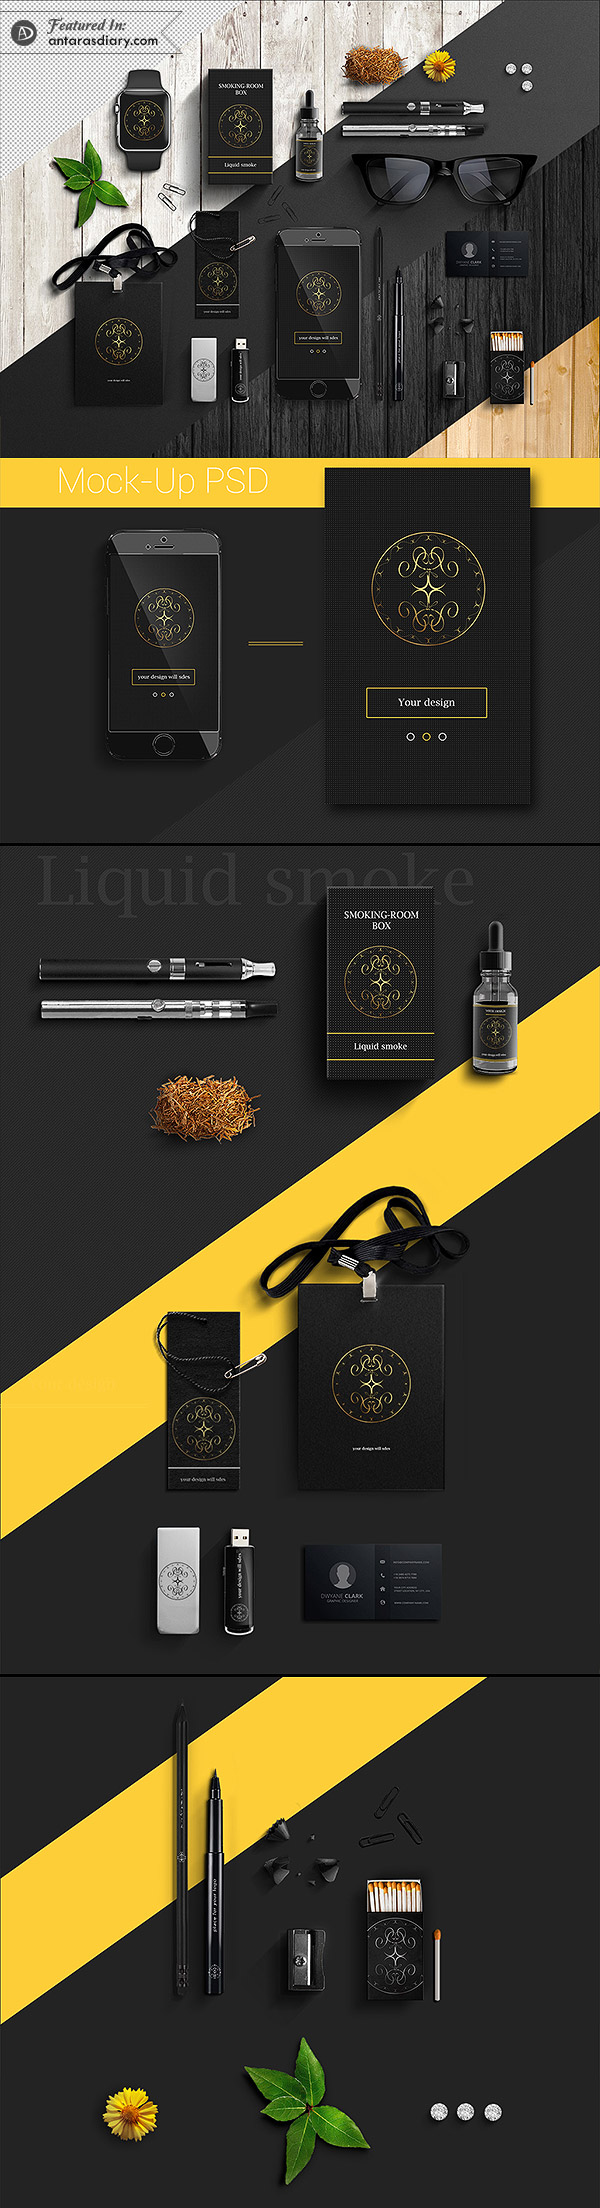 FREE Business Mock-Up PSD / Black / Corporate Style